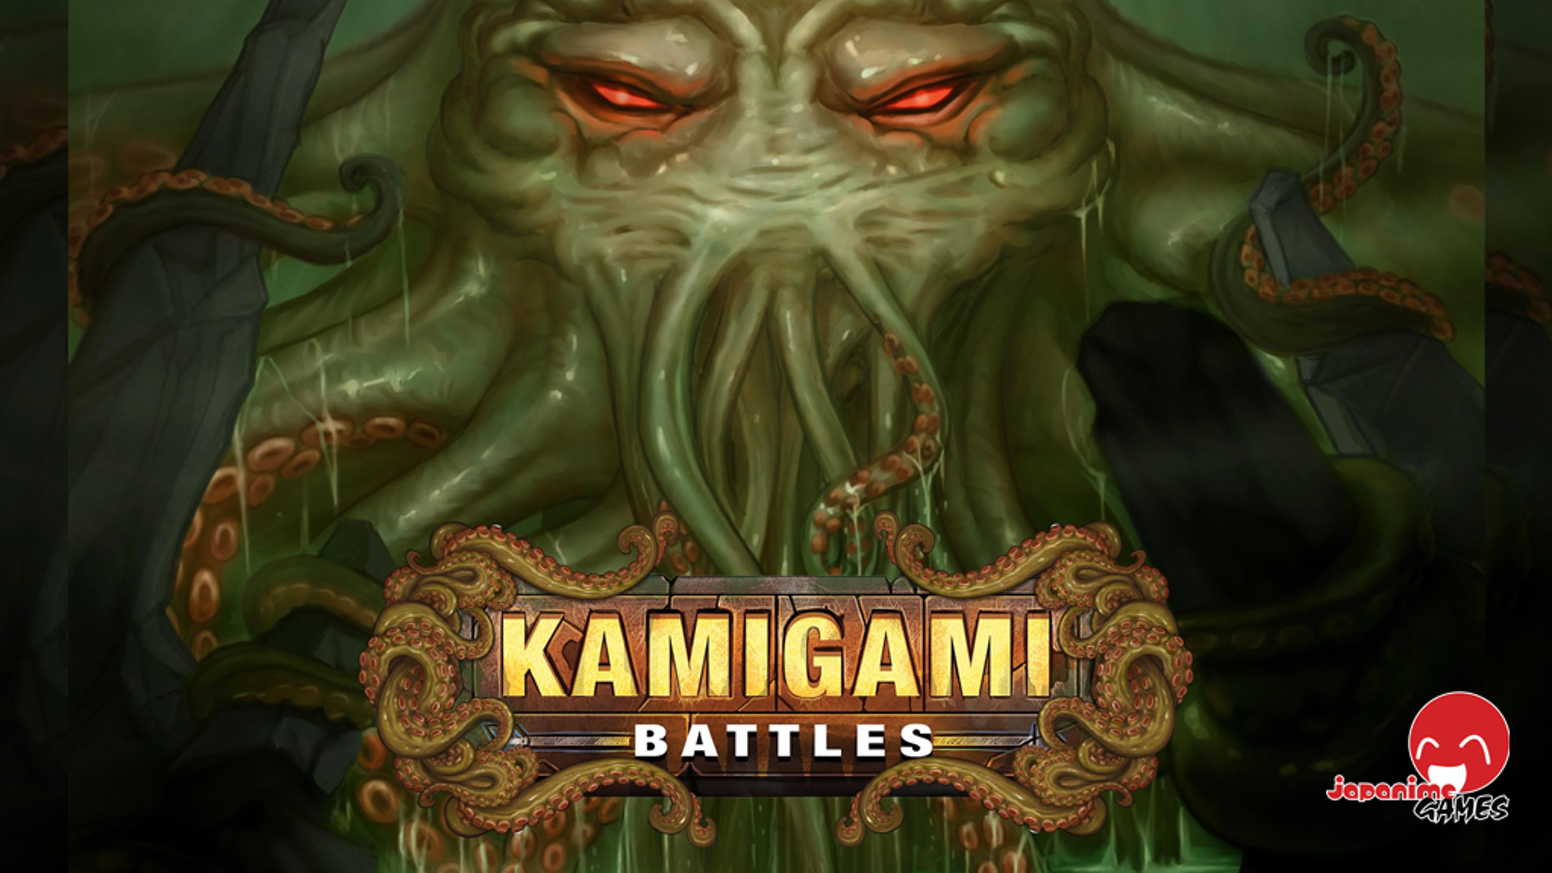 Kamigami Battles meets Lovecraft and gets DARK. Will Cthulhu reign supreme? Don't let the question drive you insane - get battling!